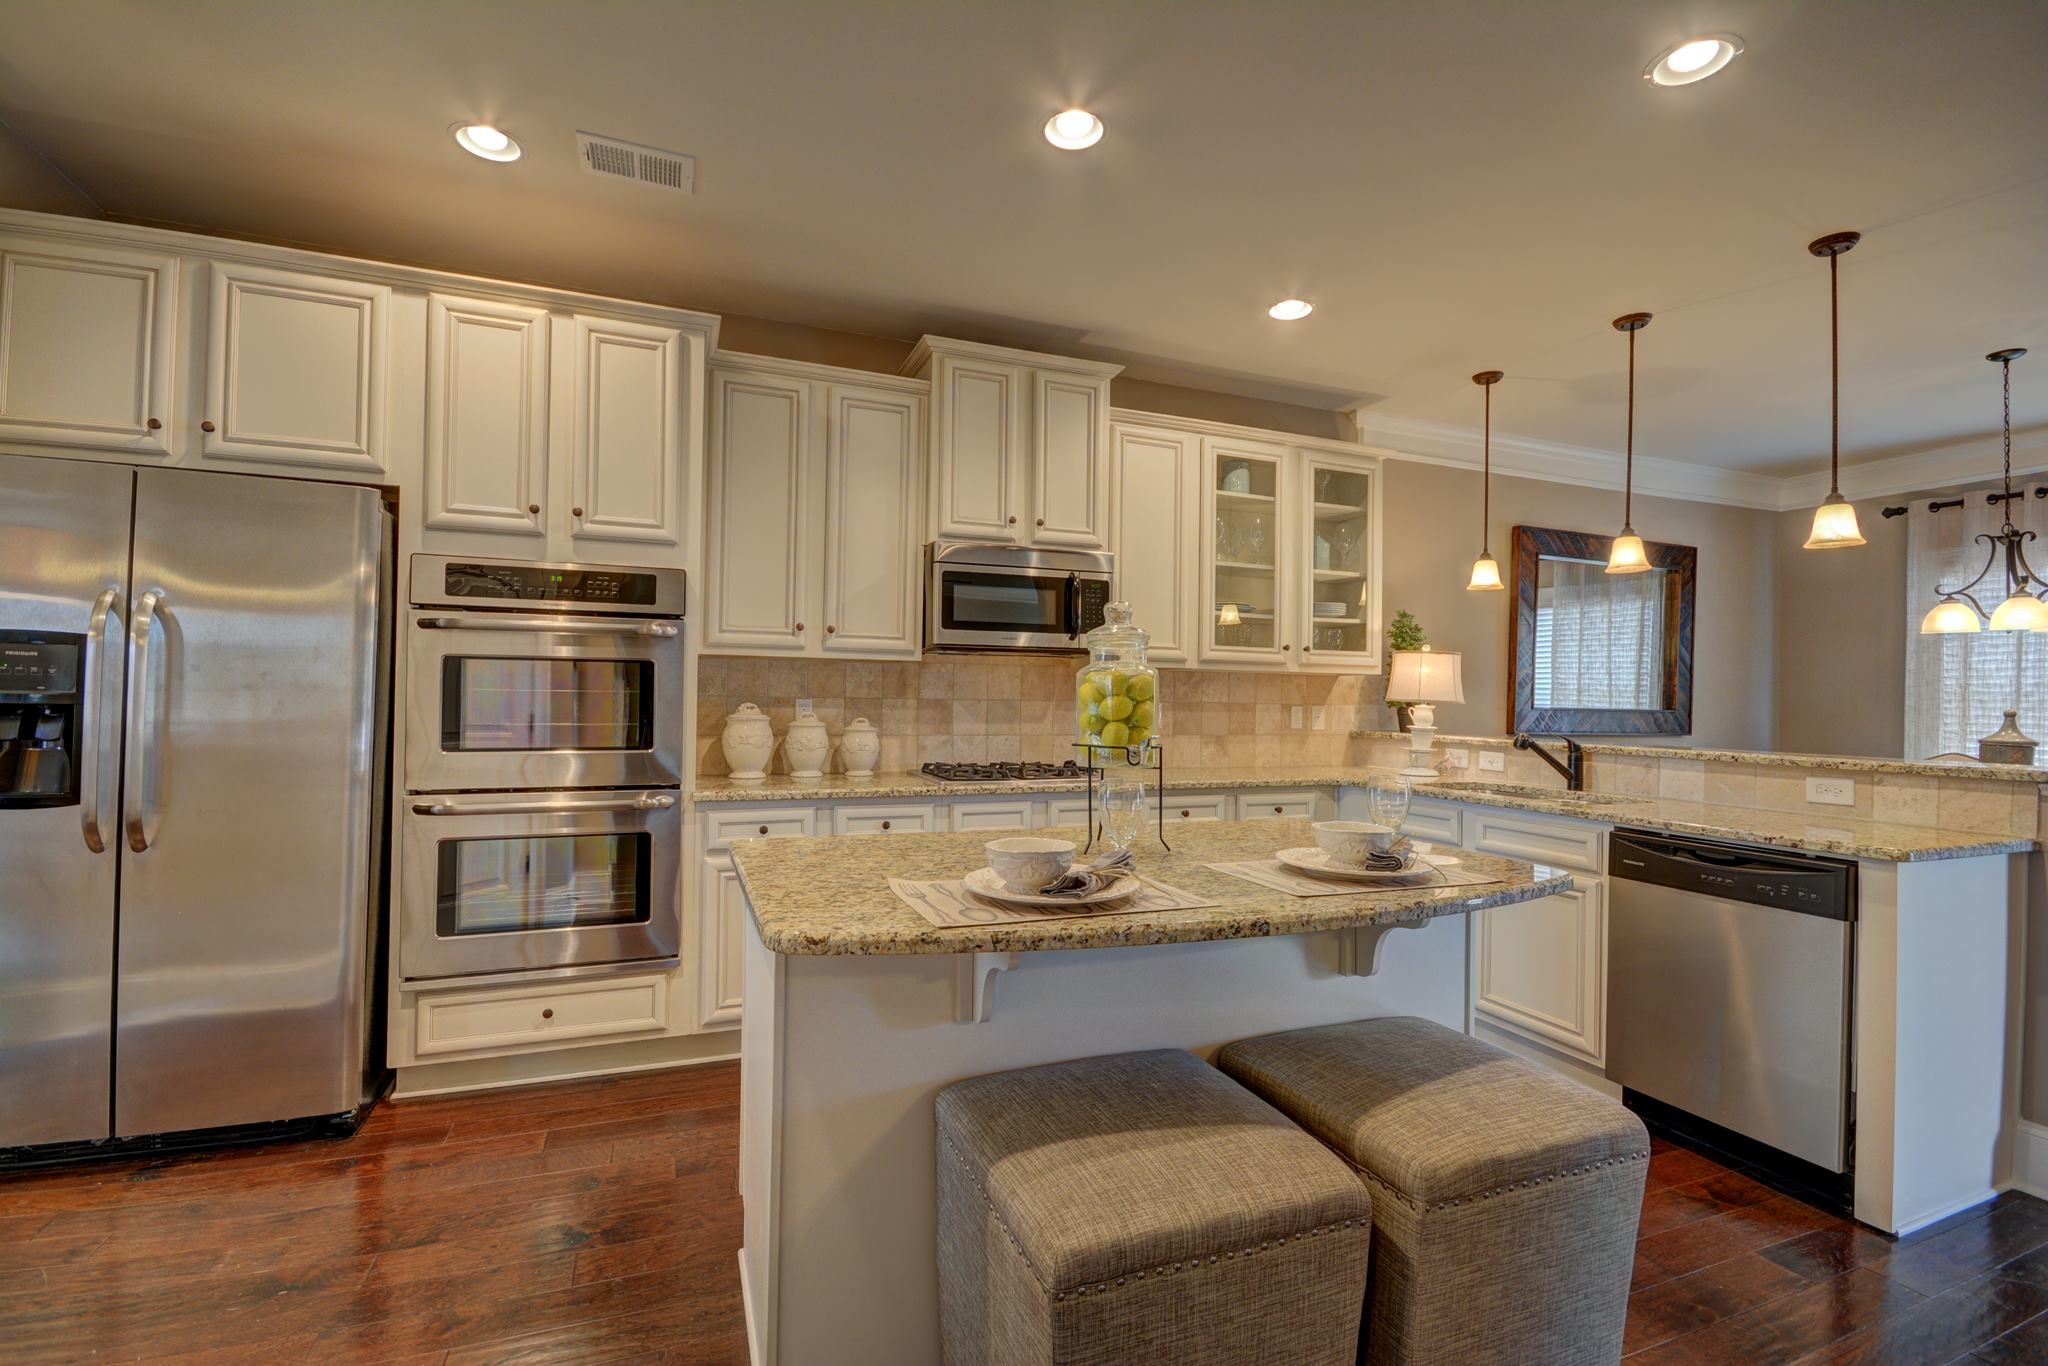 The Gorgeous Kitchen In The Oakwood G Floor Plan Has Plenty Of Room To Prepare Any Meal The White Cabinets Co Gorgeous Kitchens New Homes For Sale Diy Kitchen